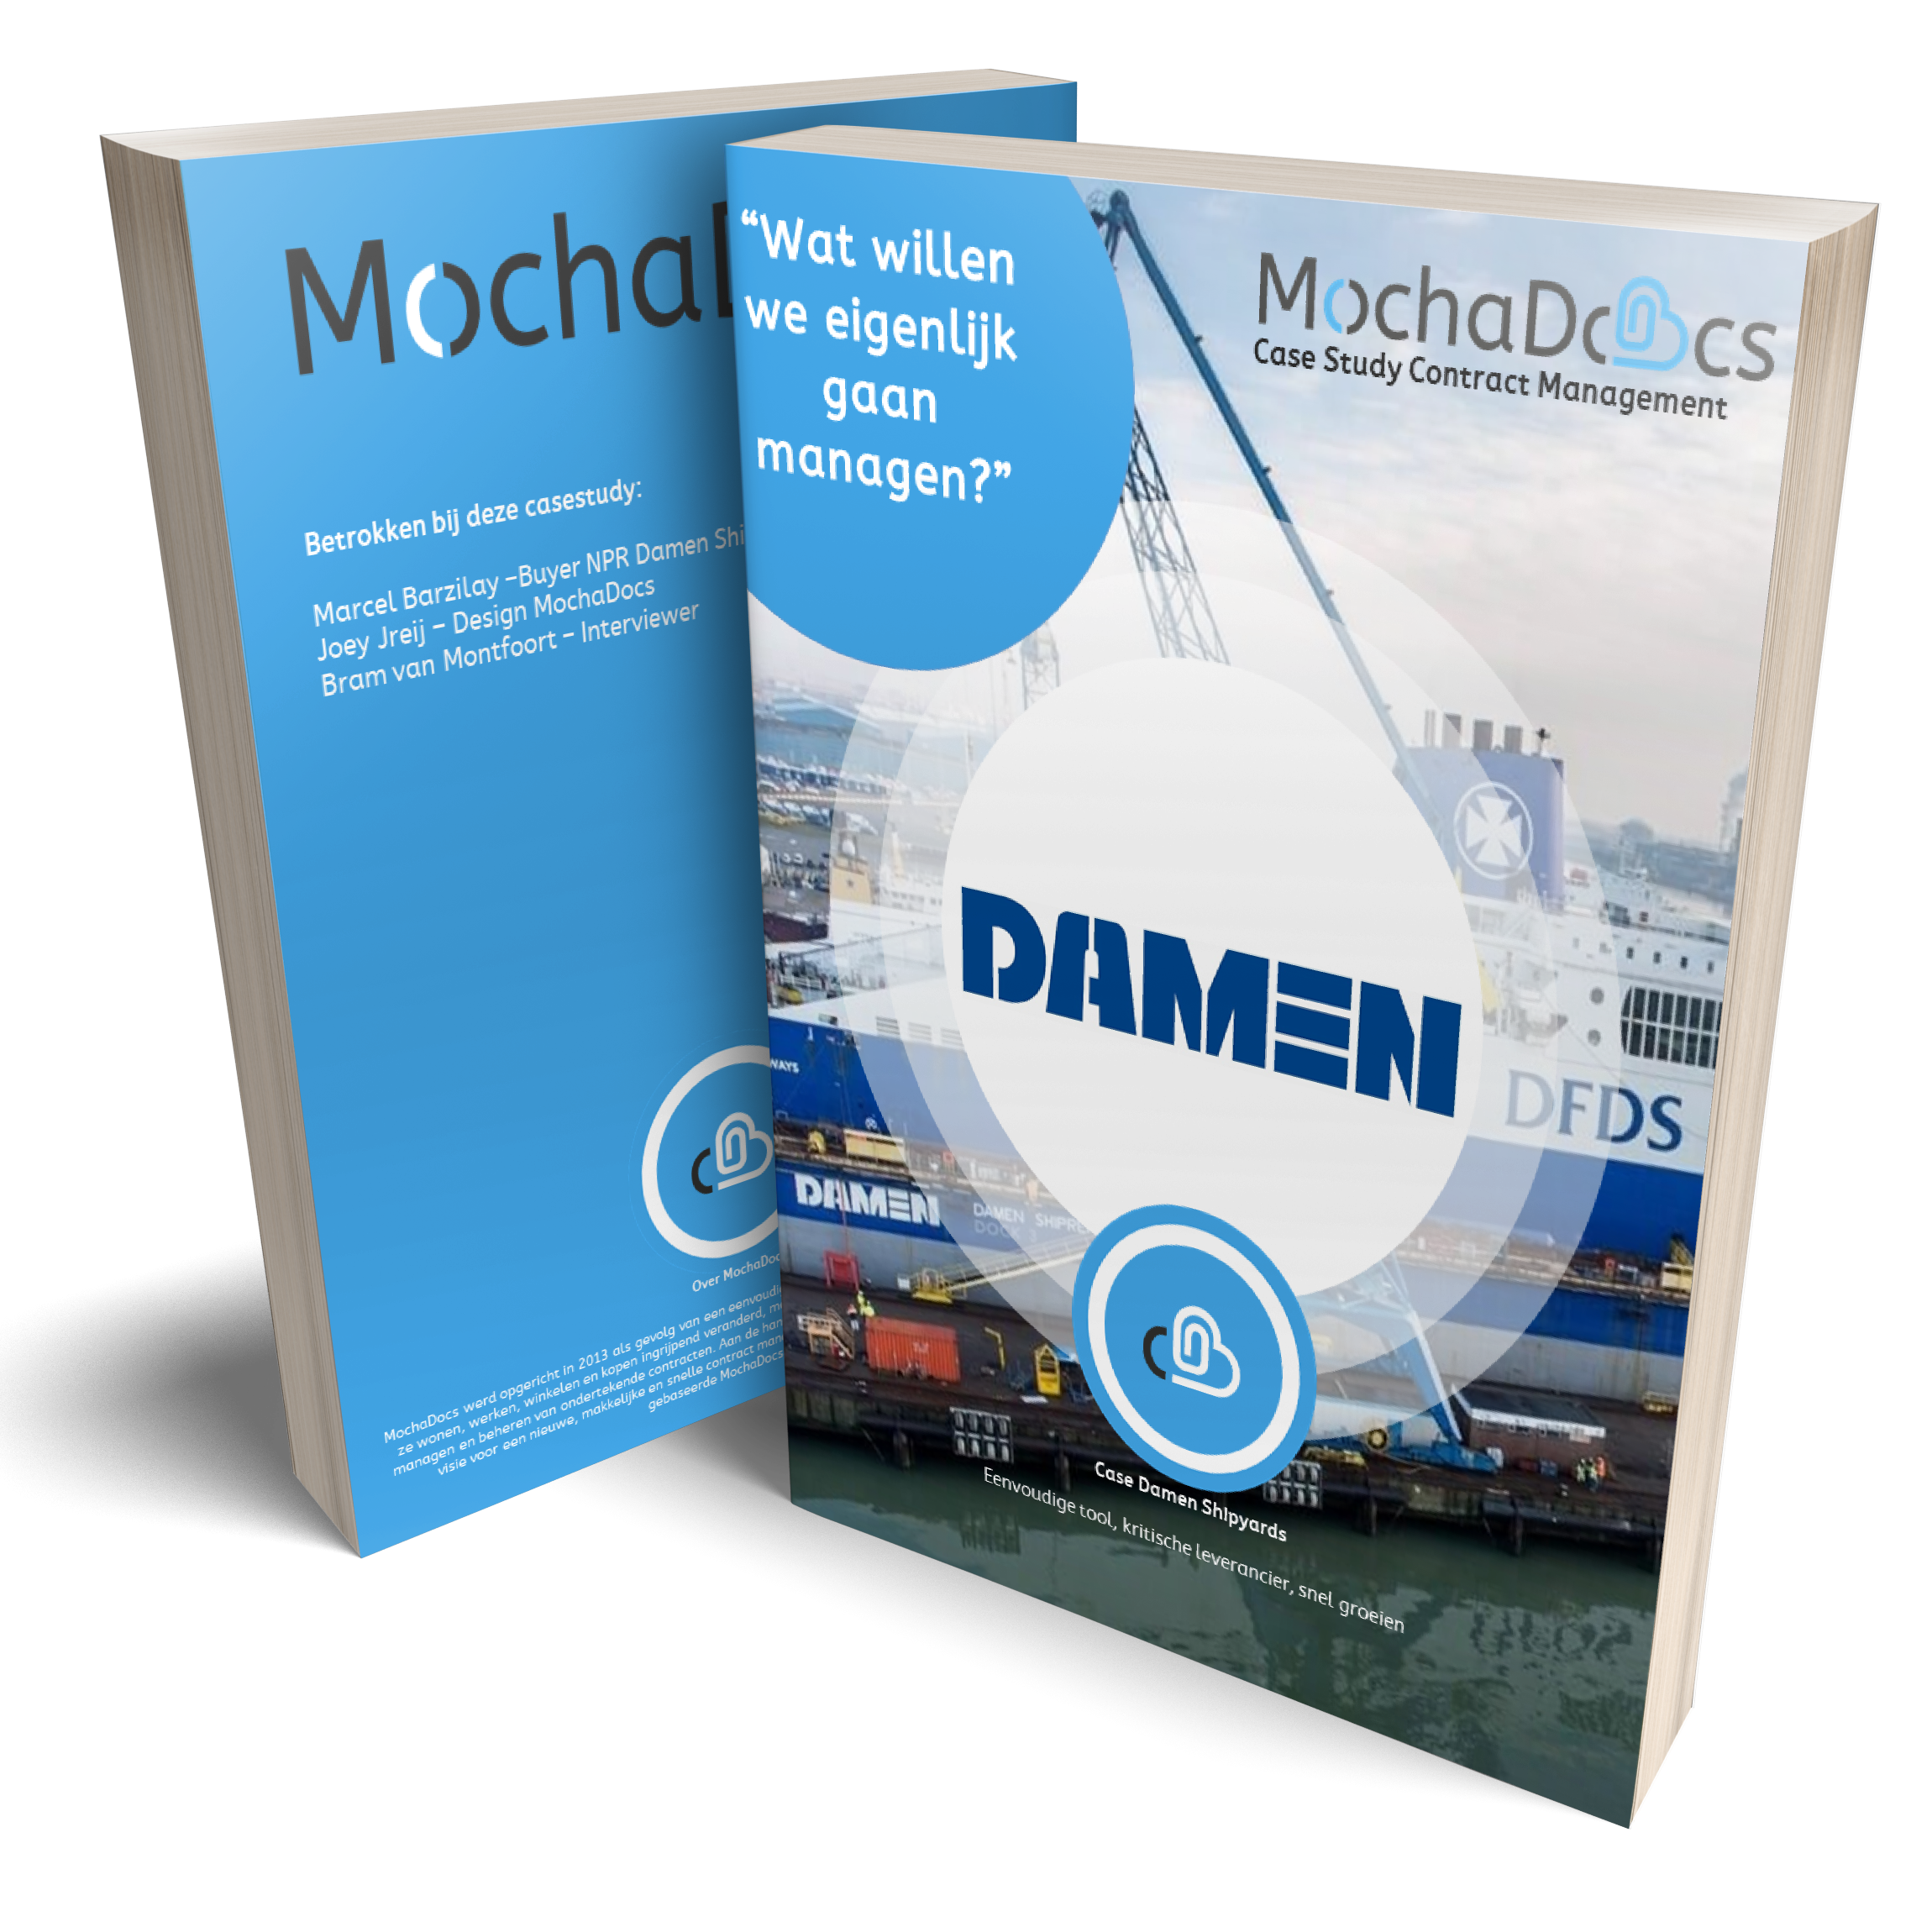 Daemn Shipyards Case Study Contract Management